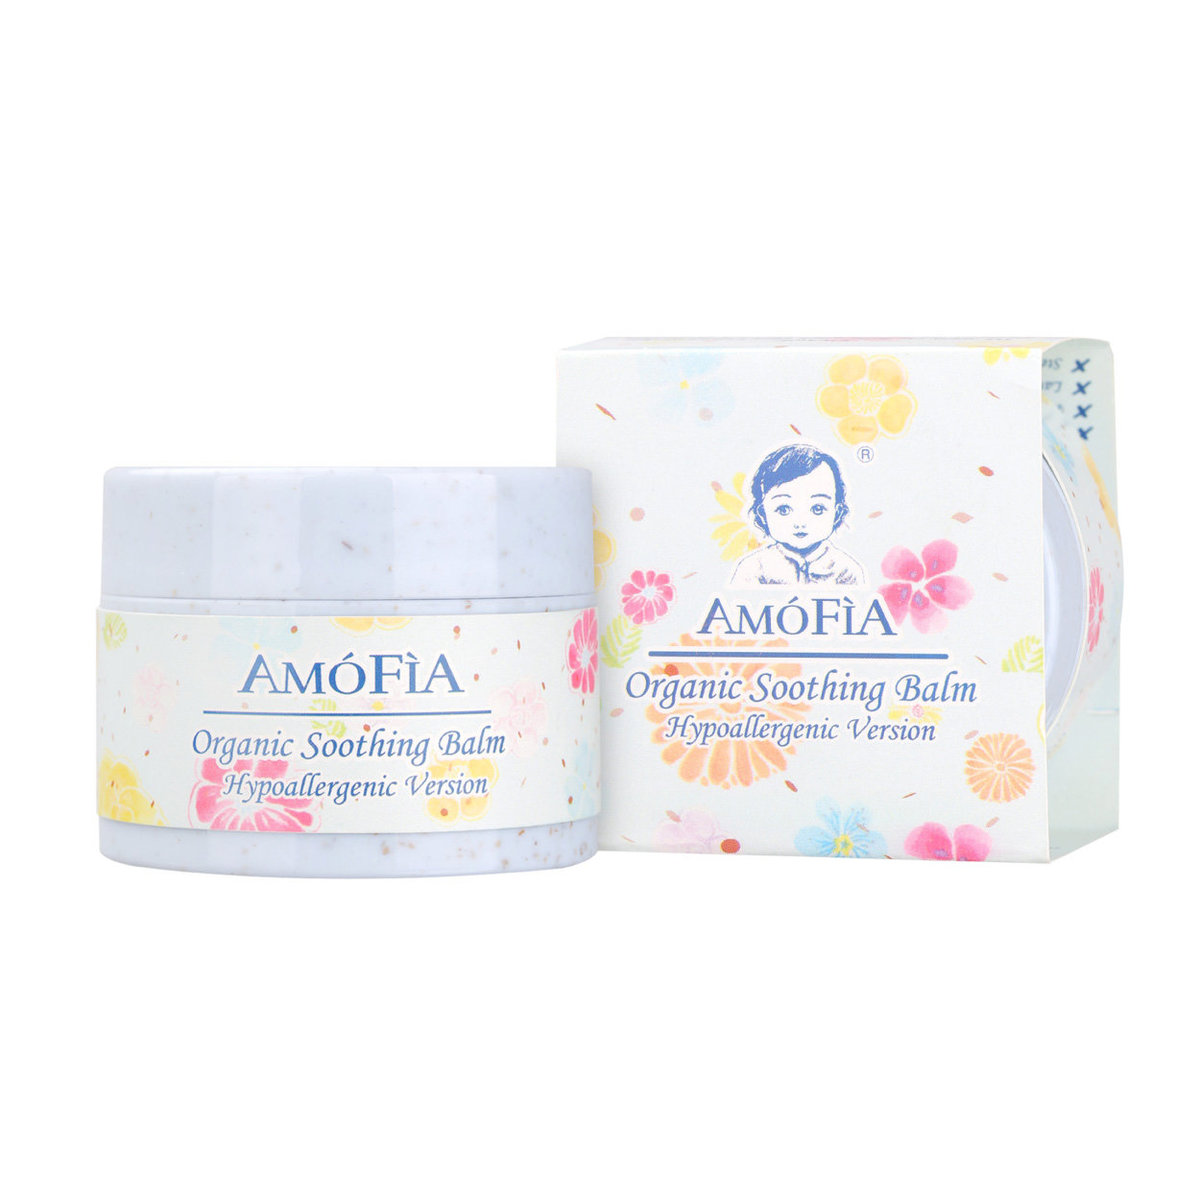 AMOFIA Organic Hypoallergenic Soothing Balm